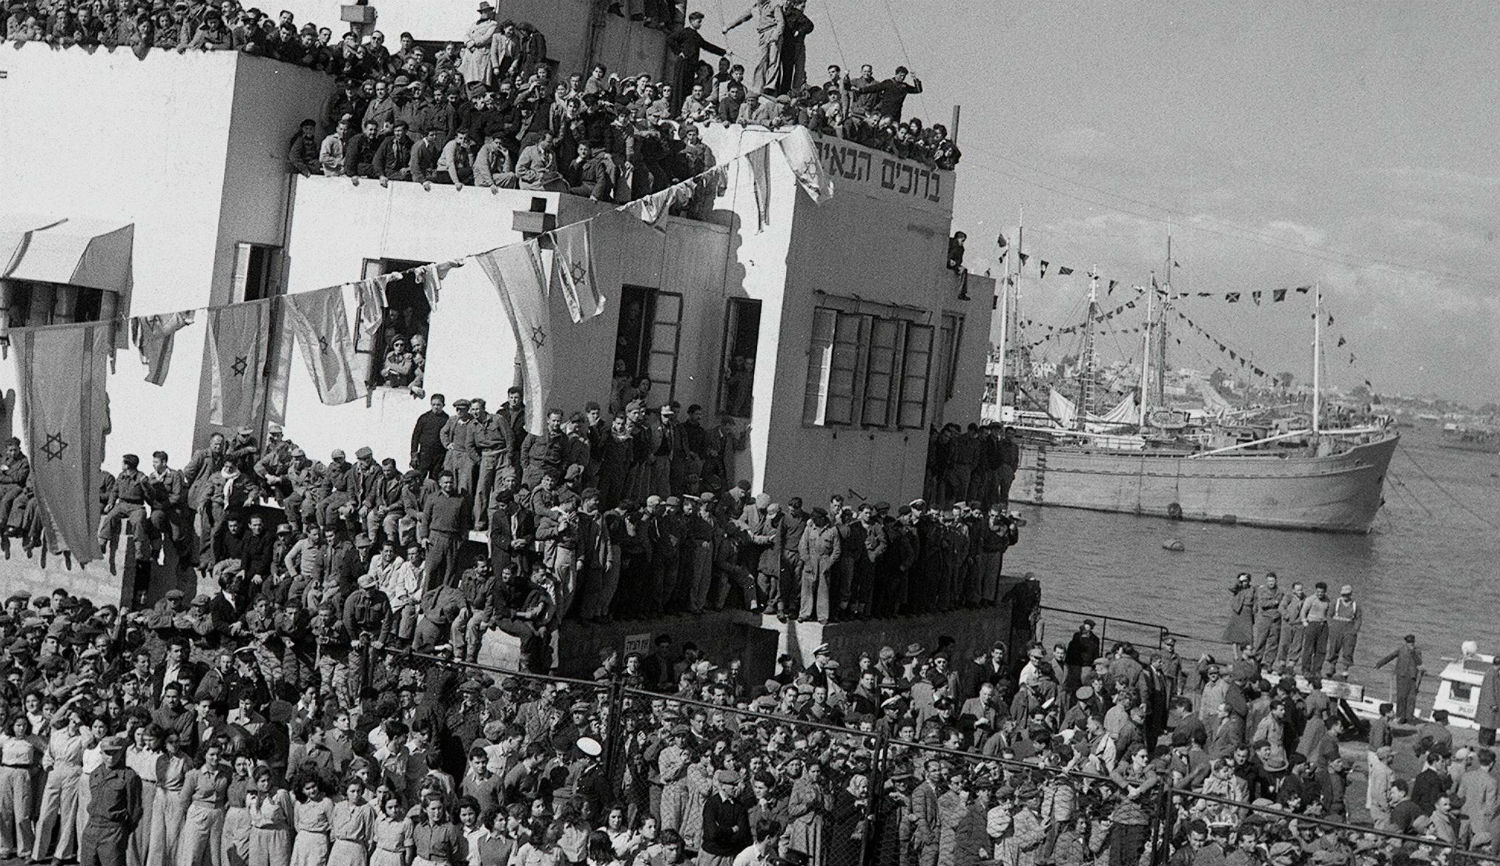 The SS Atzmaut docks in Haifa in 1949 carrying Jewish refugees from Eastern Europe. Eldan David/Government Press Office of Israel.